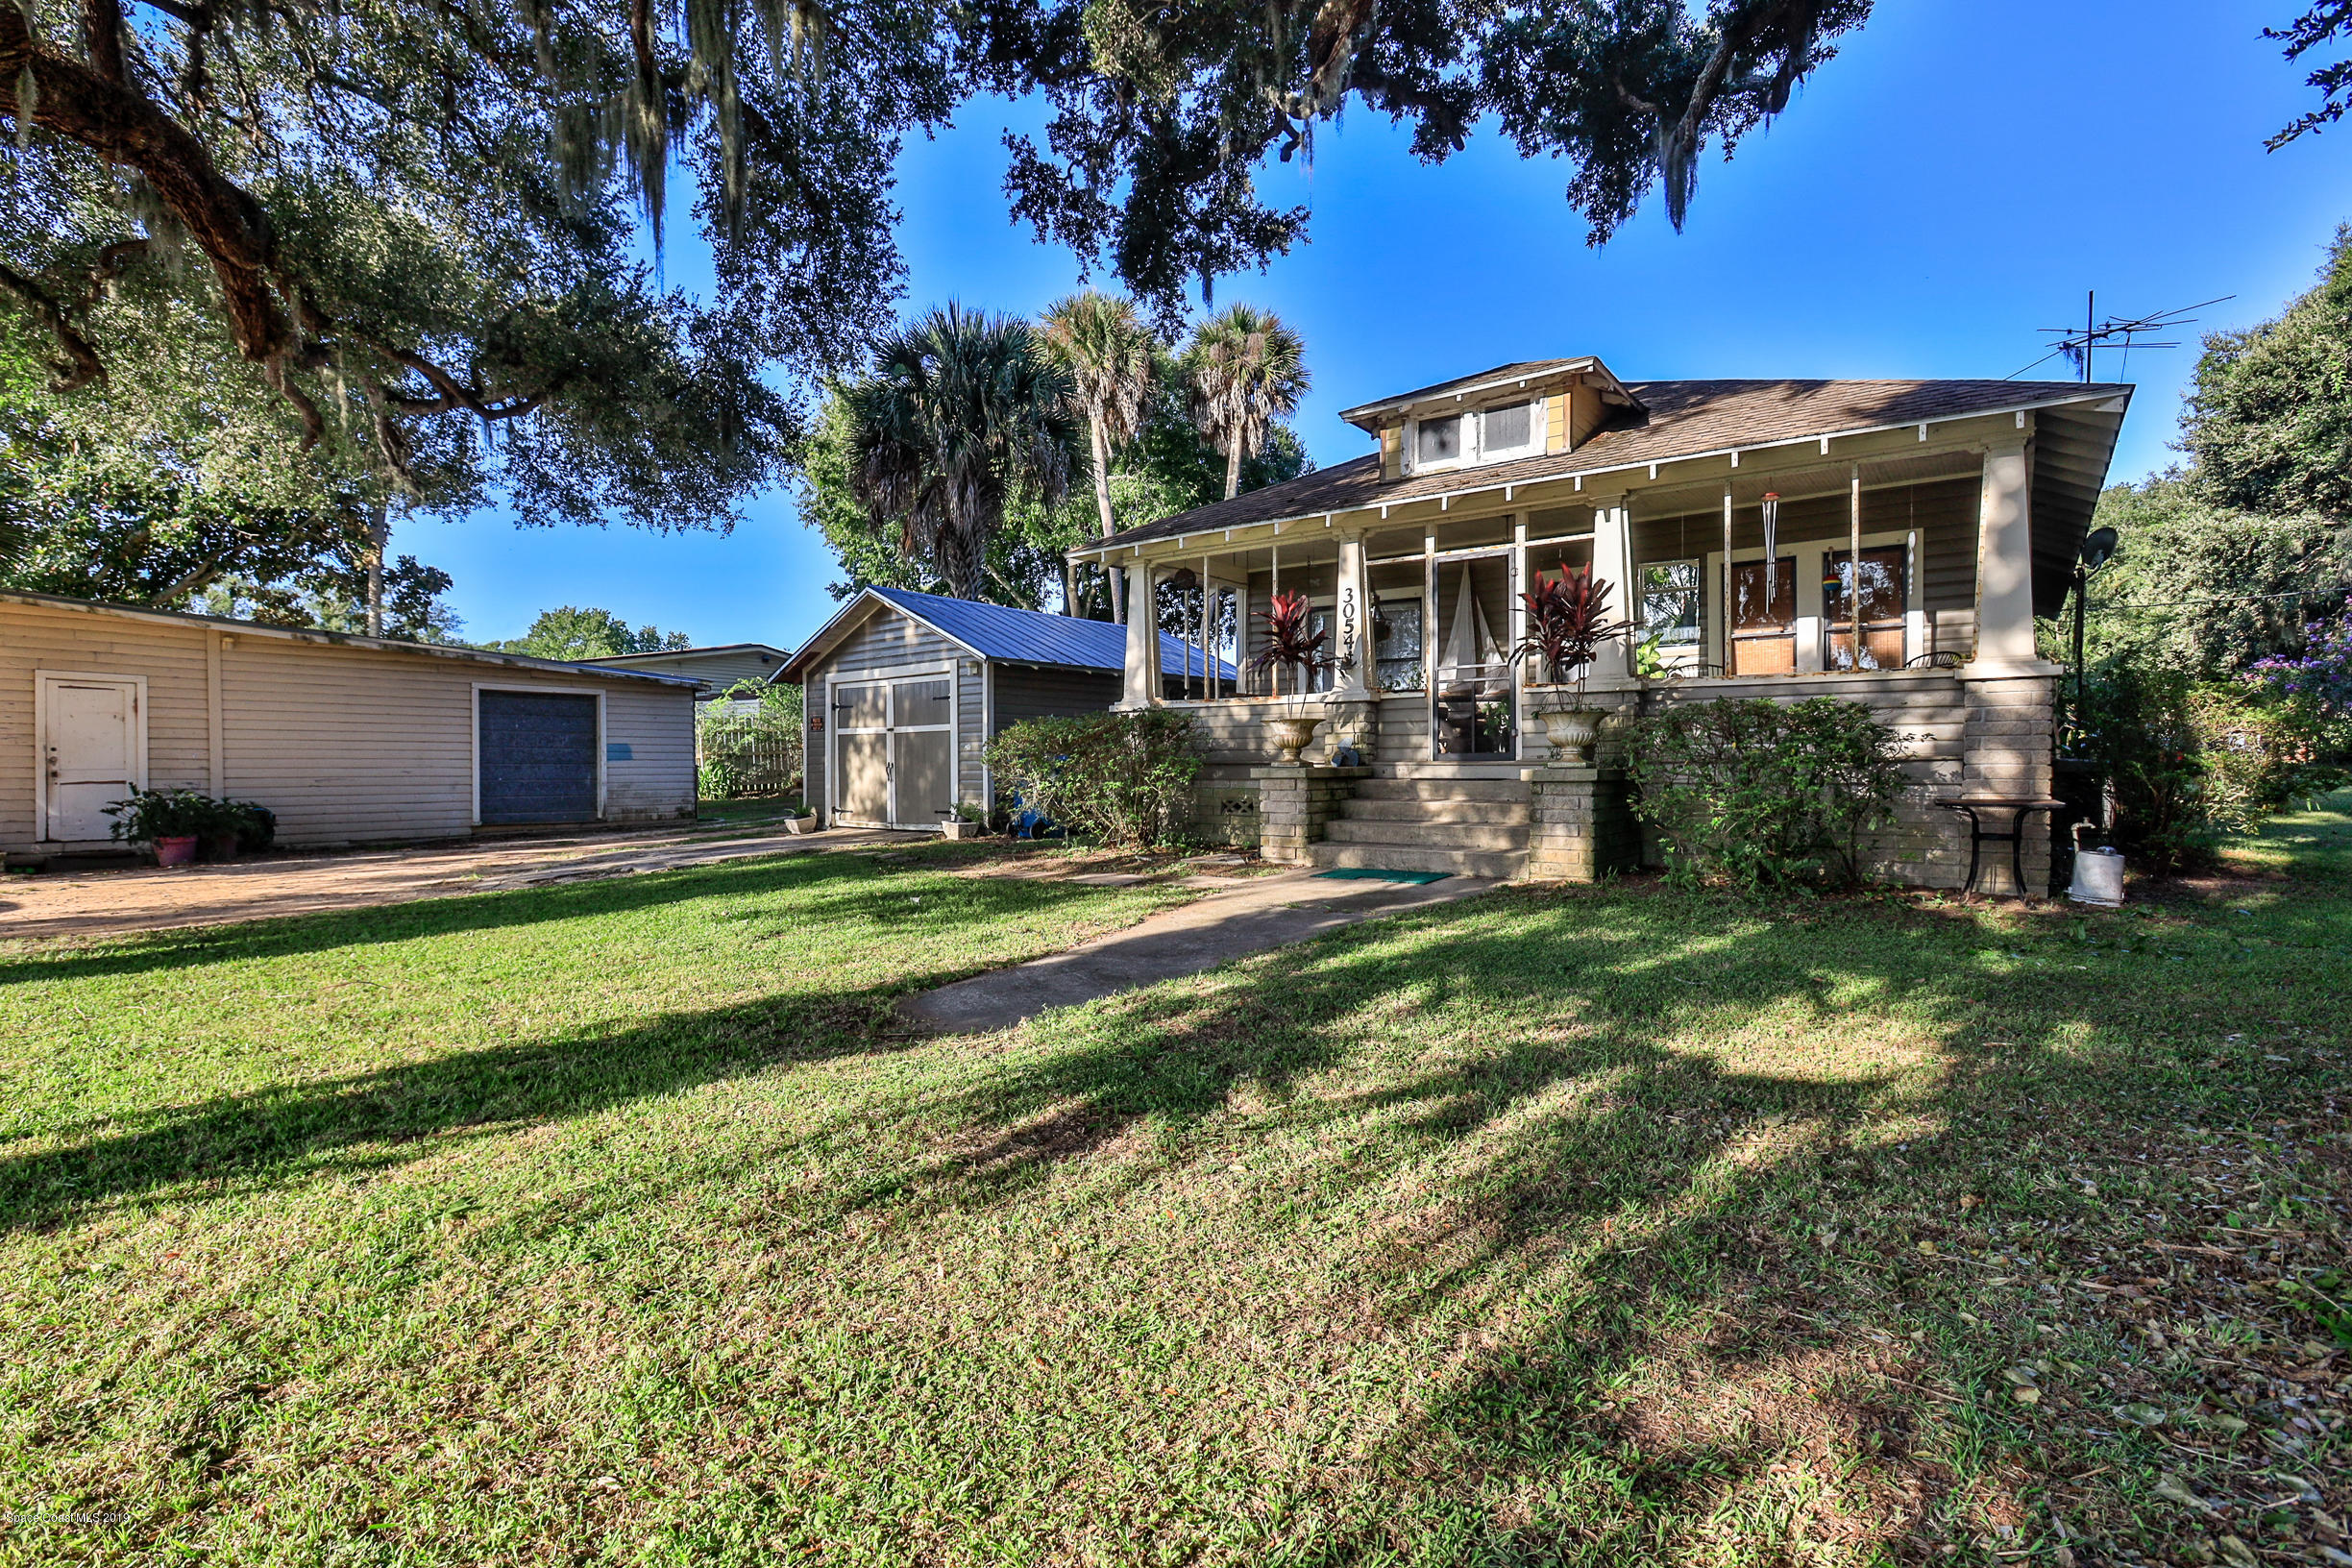 3054 Dixie N, New Smyrna Beach, FL 32168